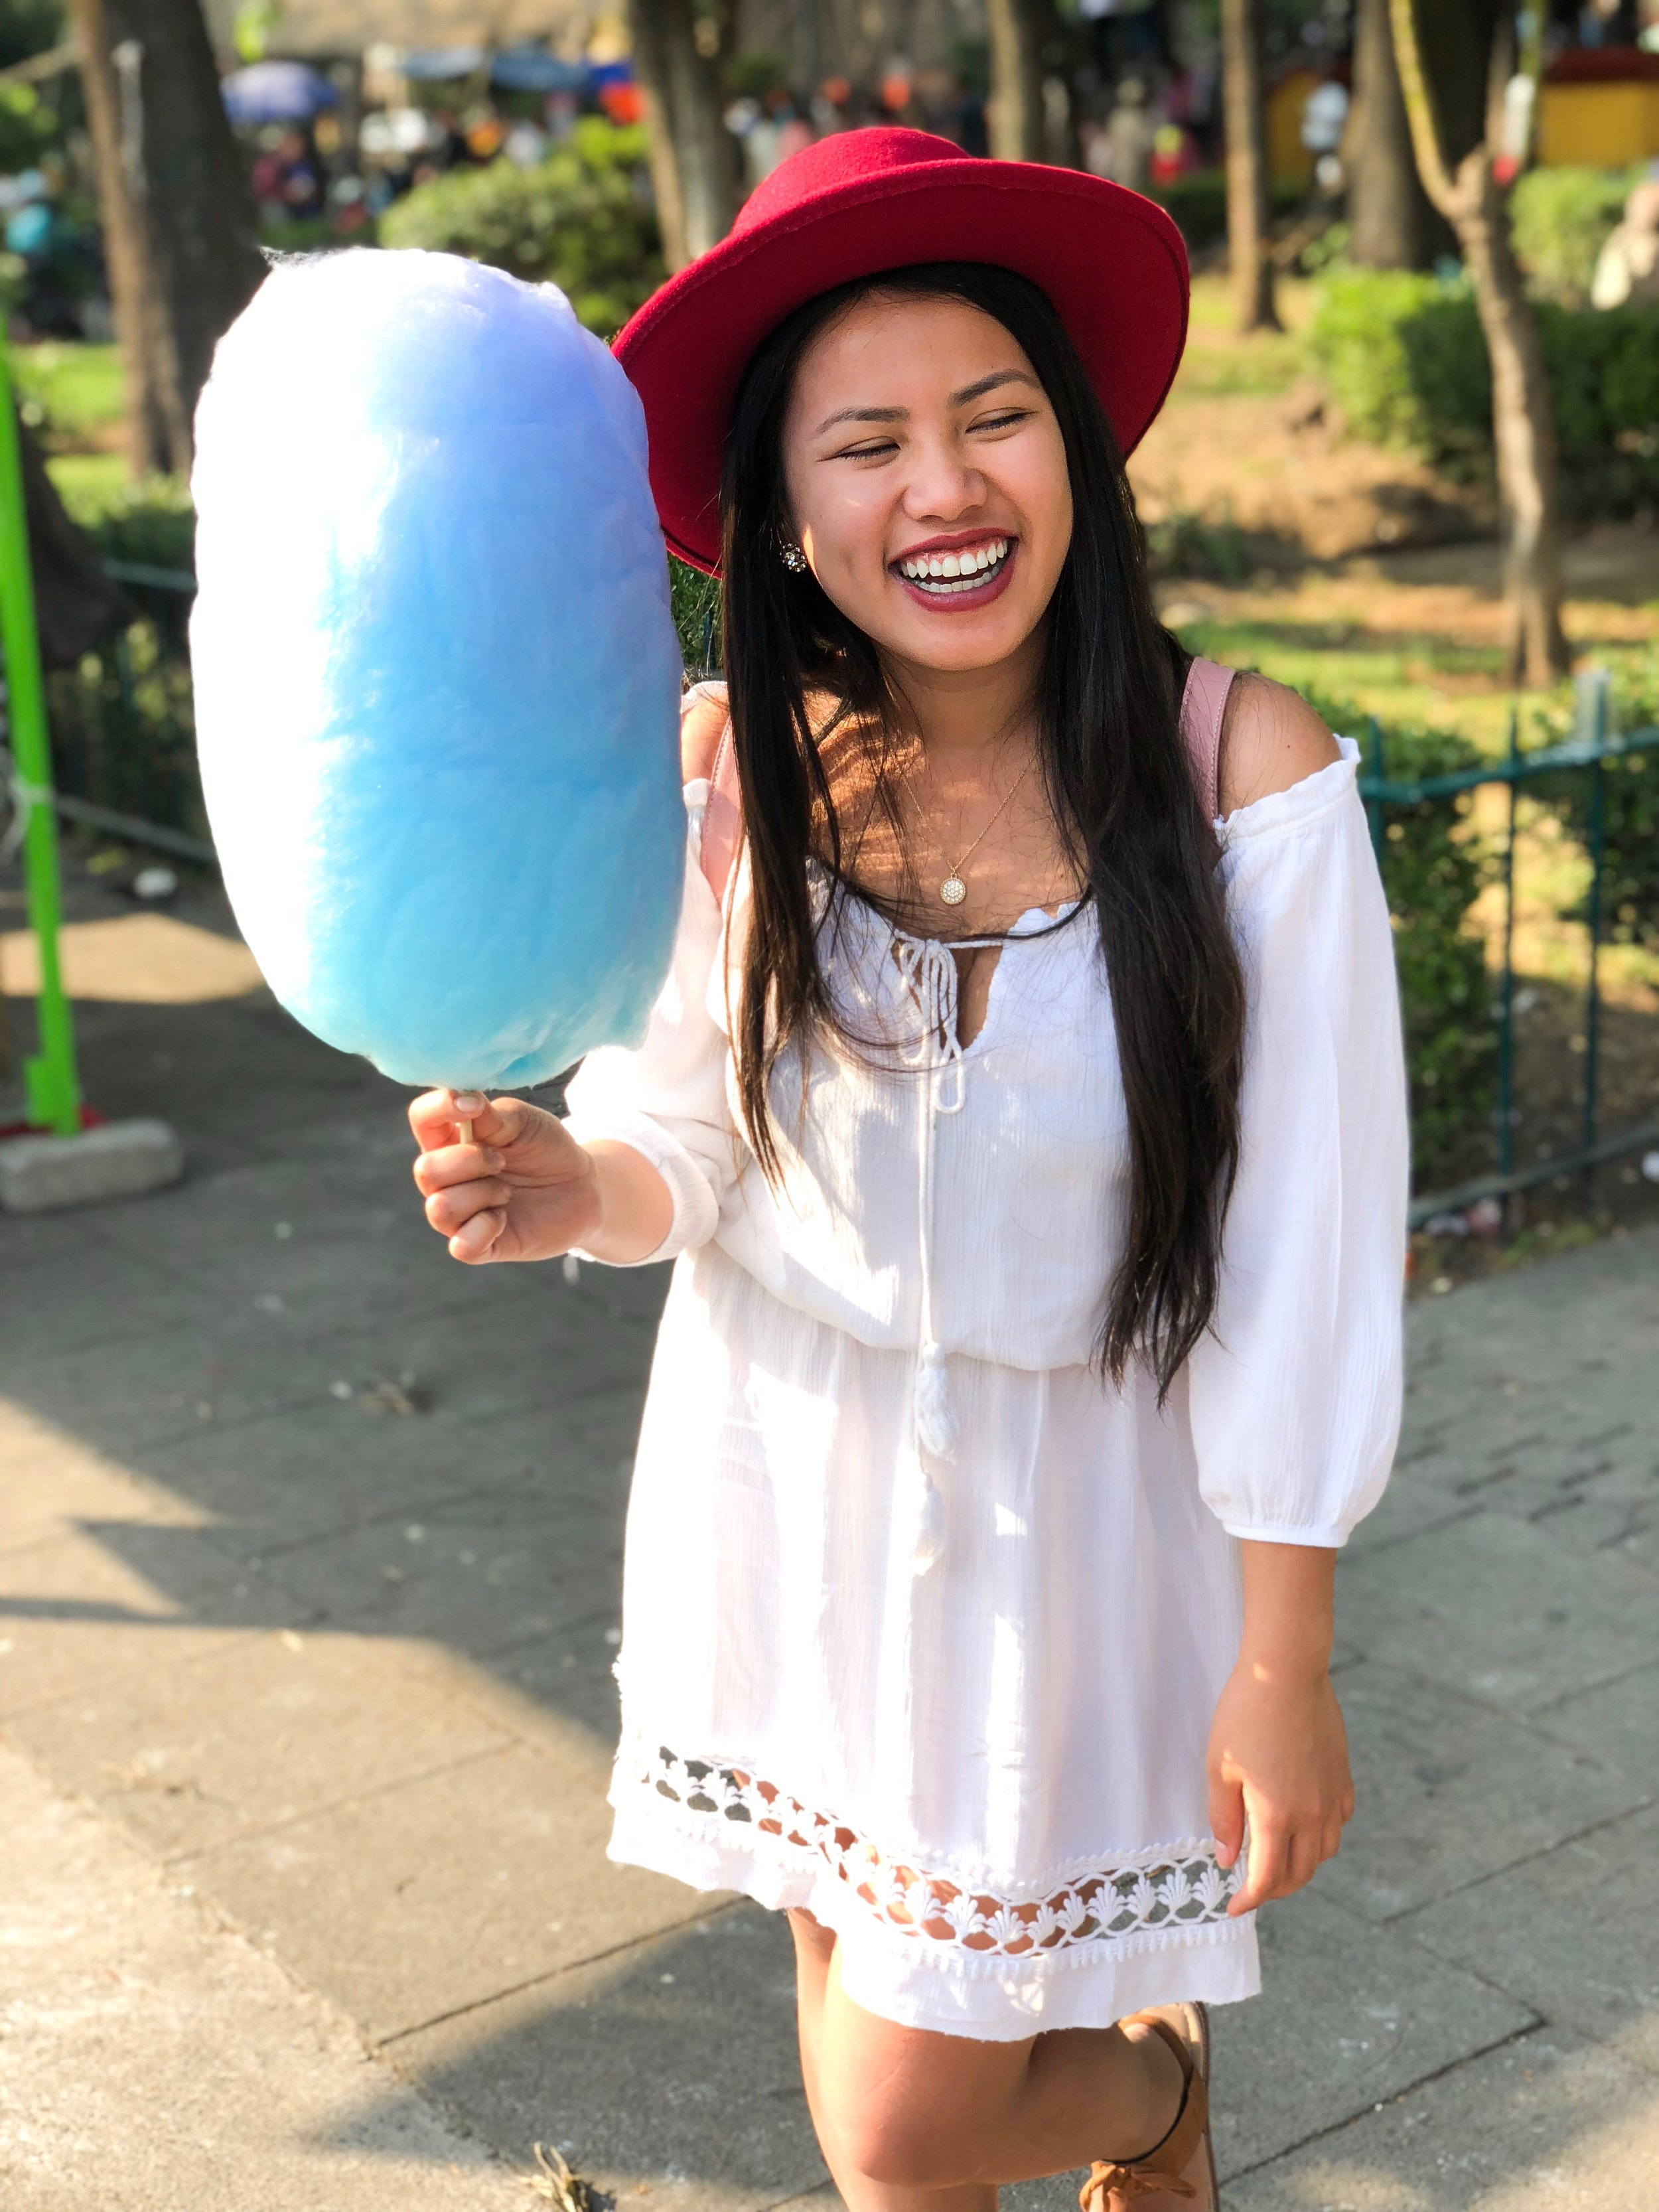 11 peso ($0.60 USD)cotton candy? Who wouldn't be all smiles!